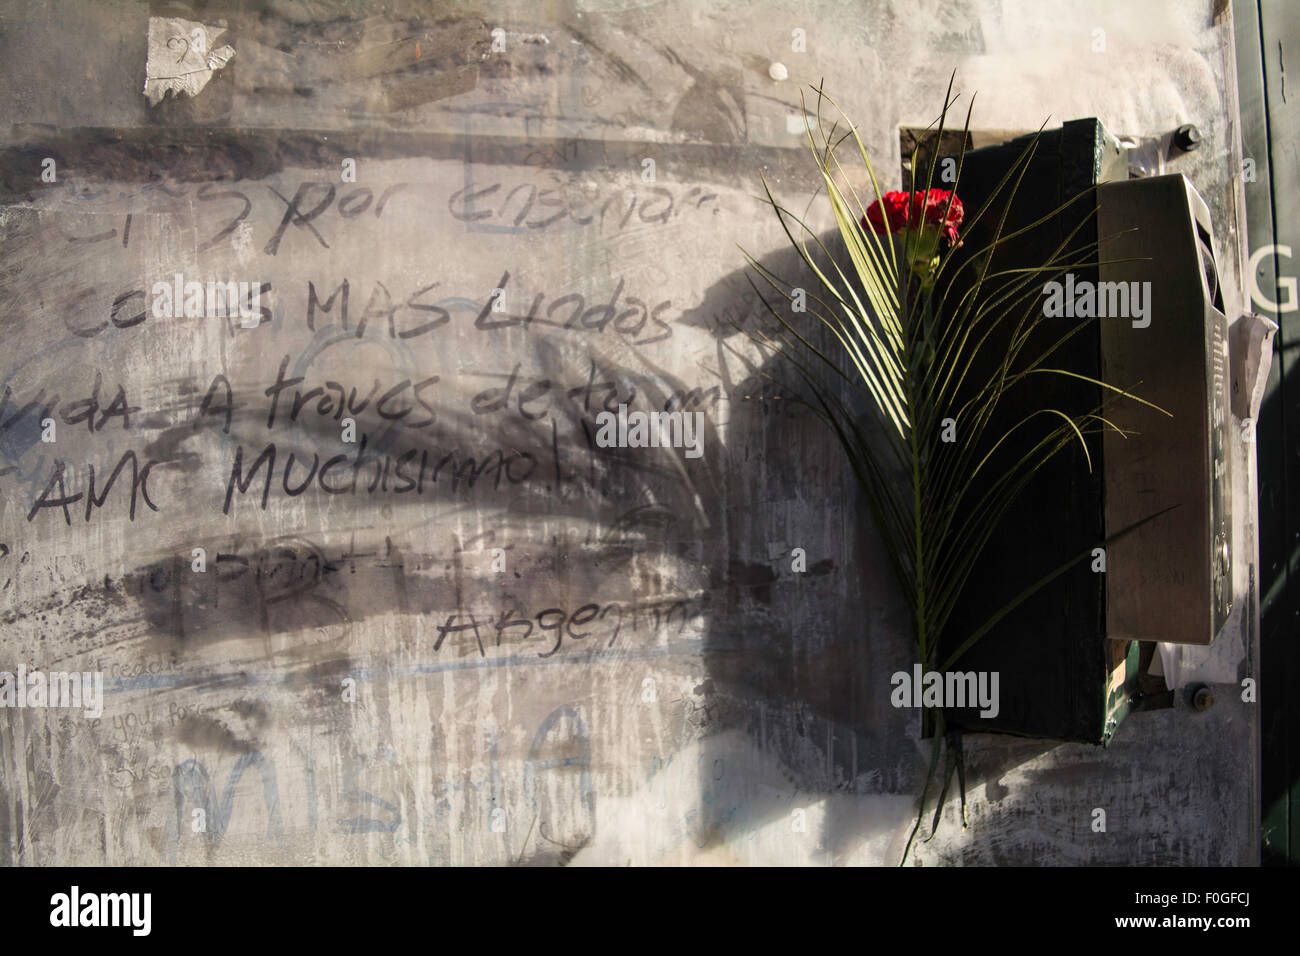 Garden Lodge, Freddie Mercury's last home. The  wall covered in graffiti and messages from fans from around the Stock Photo